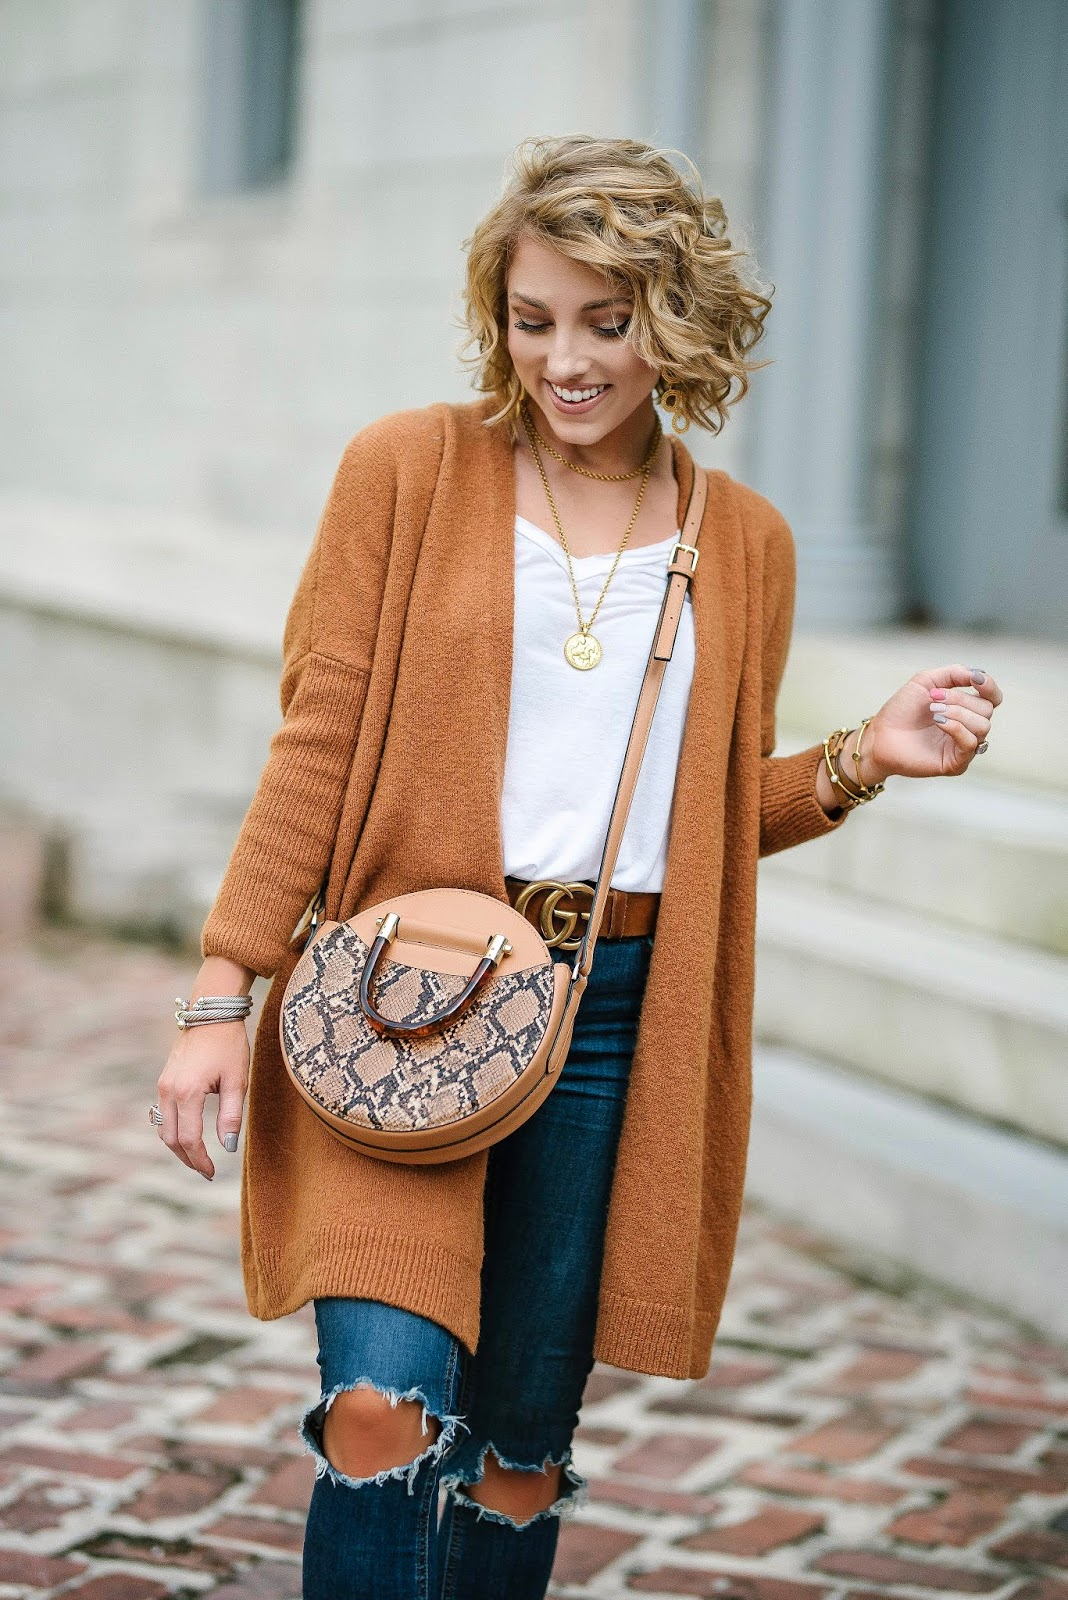 Fall Fashion: $51 Brown Cardigan, Free People Jeans and  Keds x Rifle Paper Co. Sneakers - Something Delightful Blog